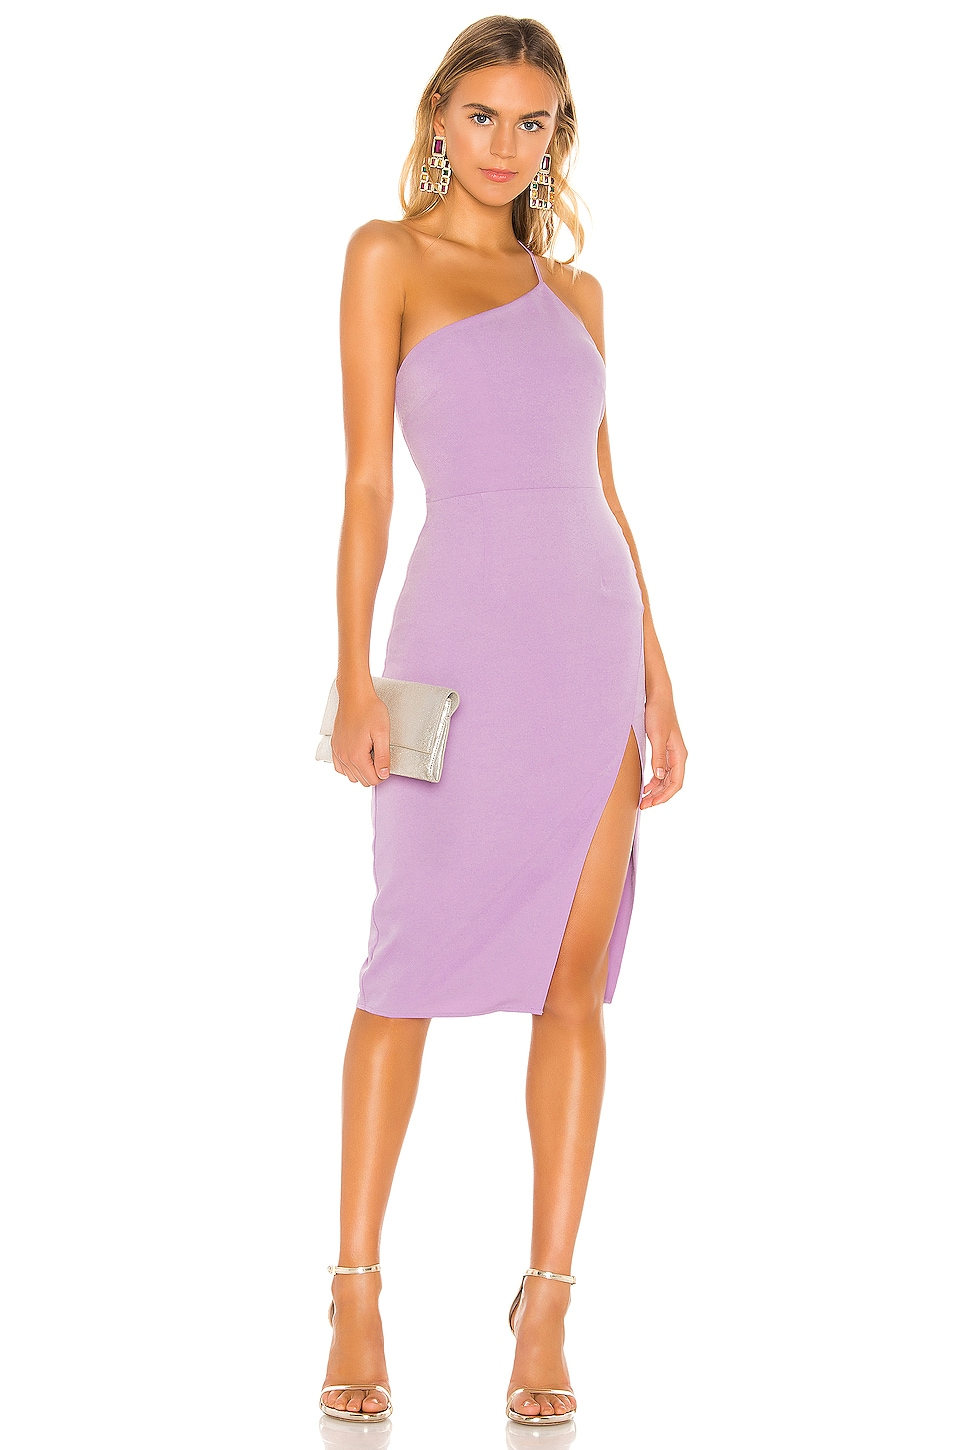 Lovers + Friends Lazo Midi Dress in Lilac Purple